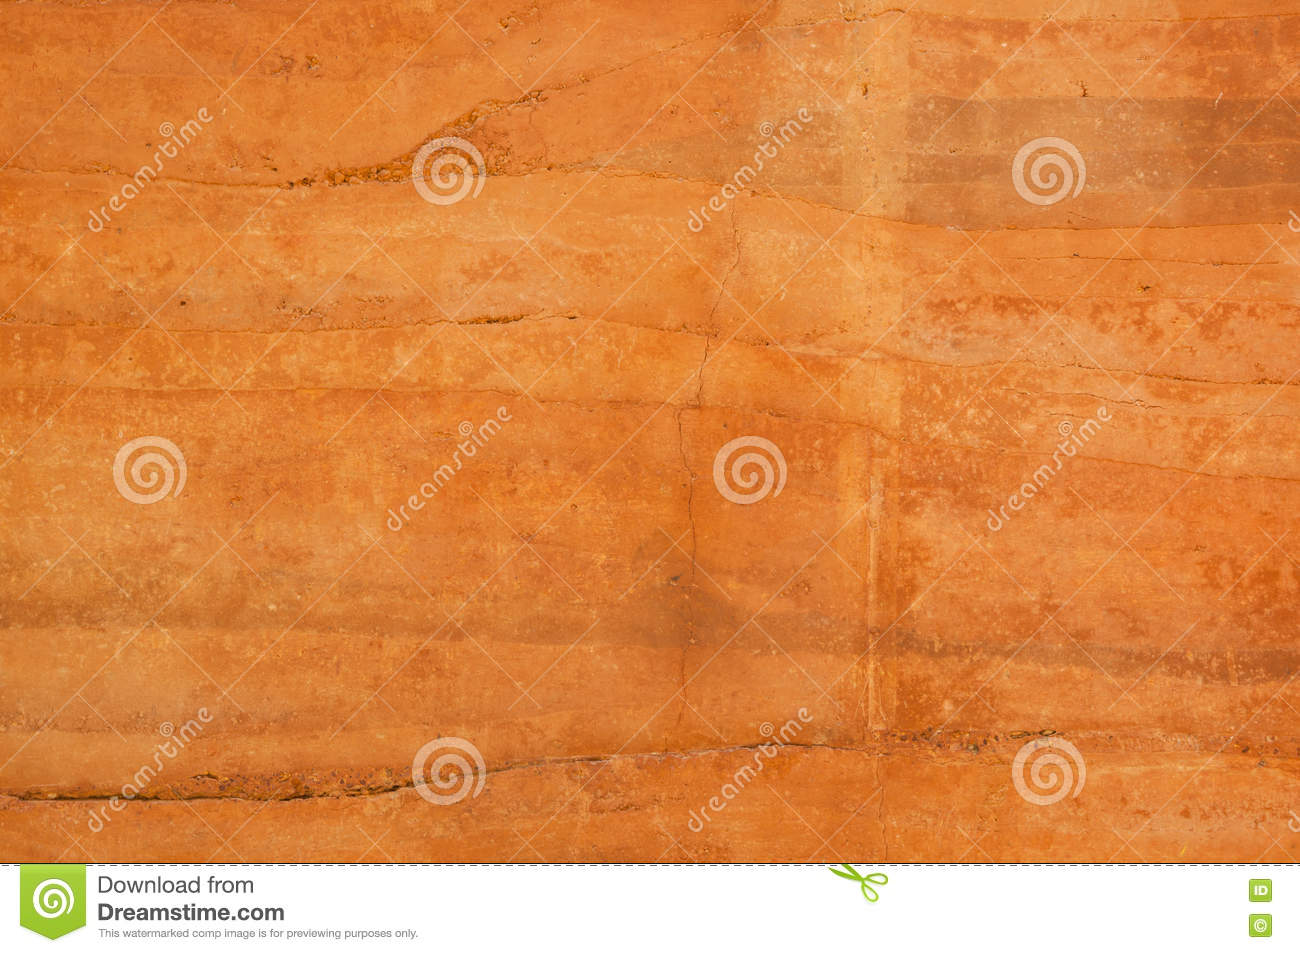 Different Shades Of Orange rammed earth wall with different shades of orange soil stock photo